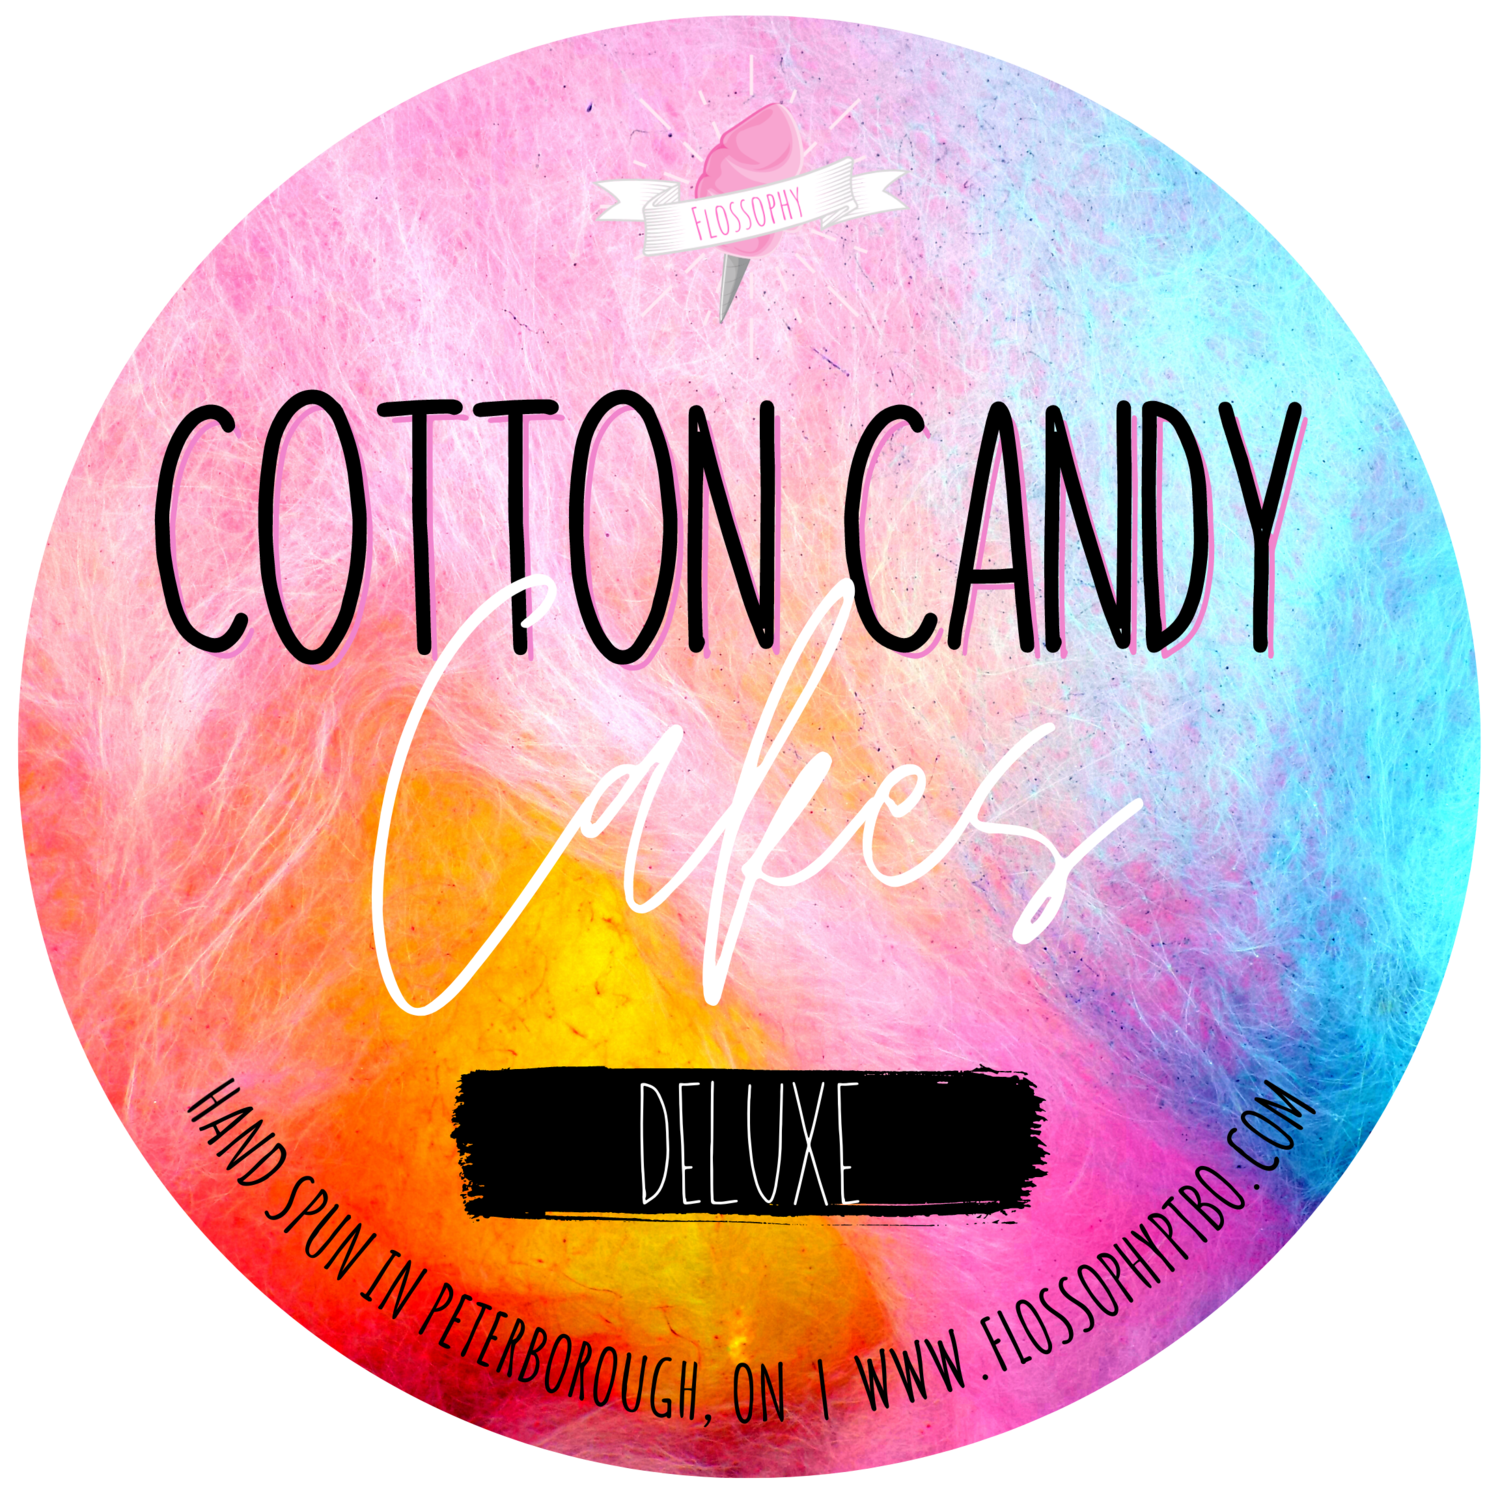 Cotton Candy Cake [DELUXE]